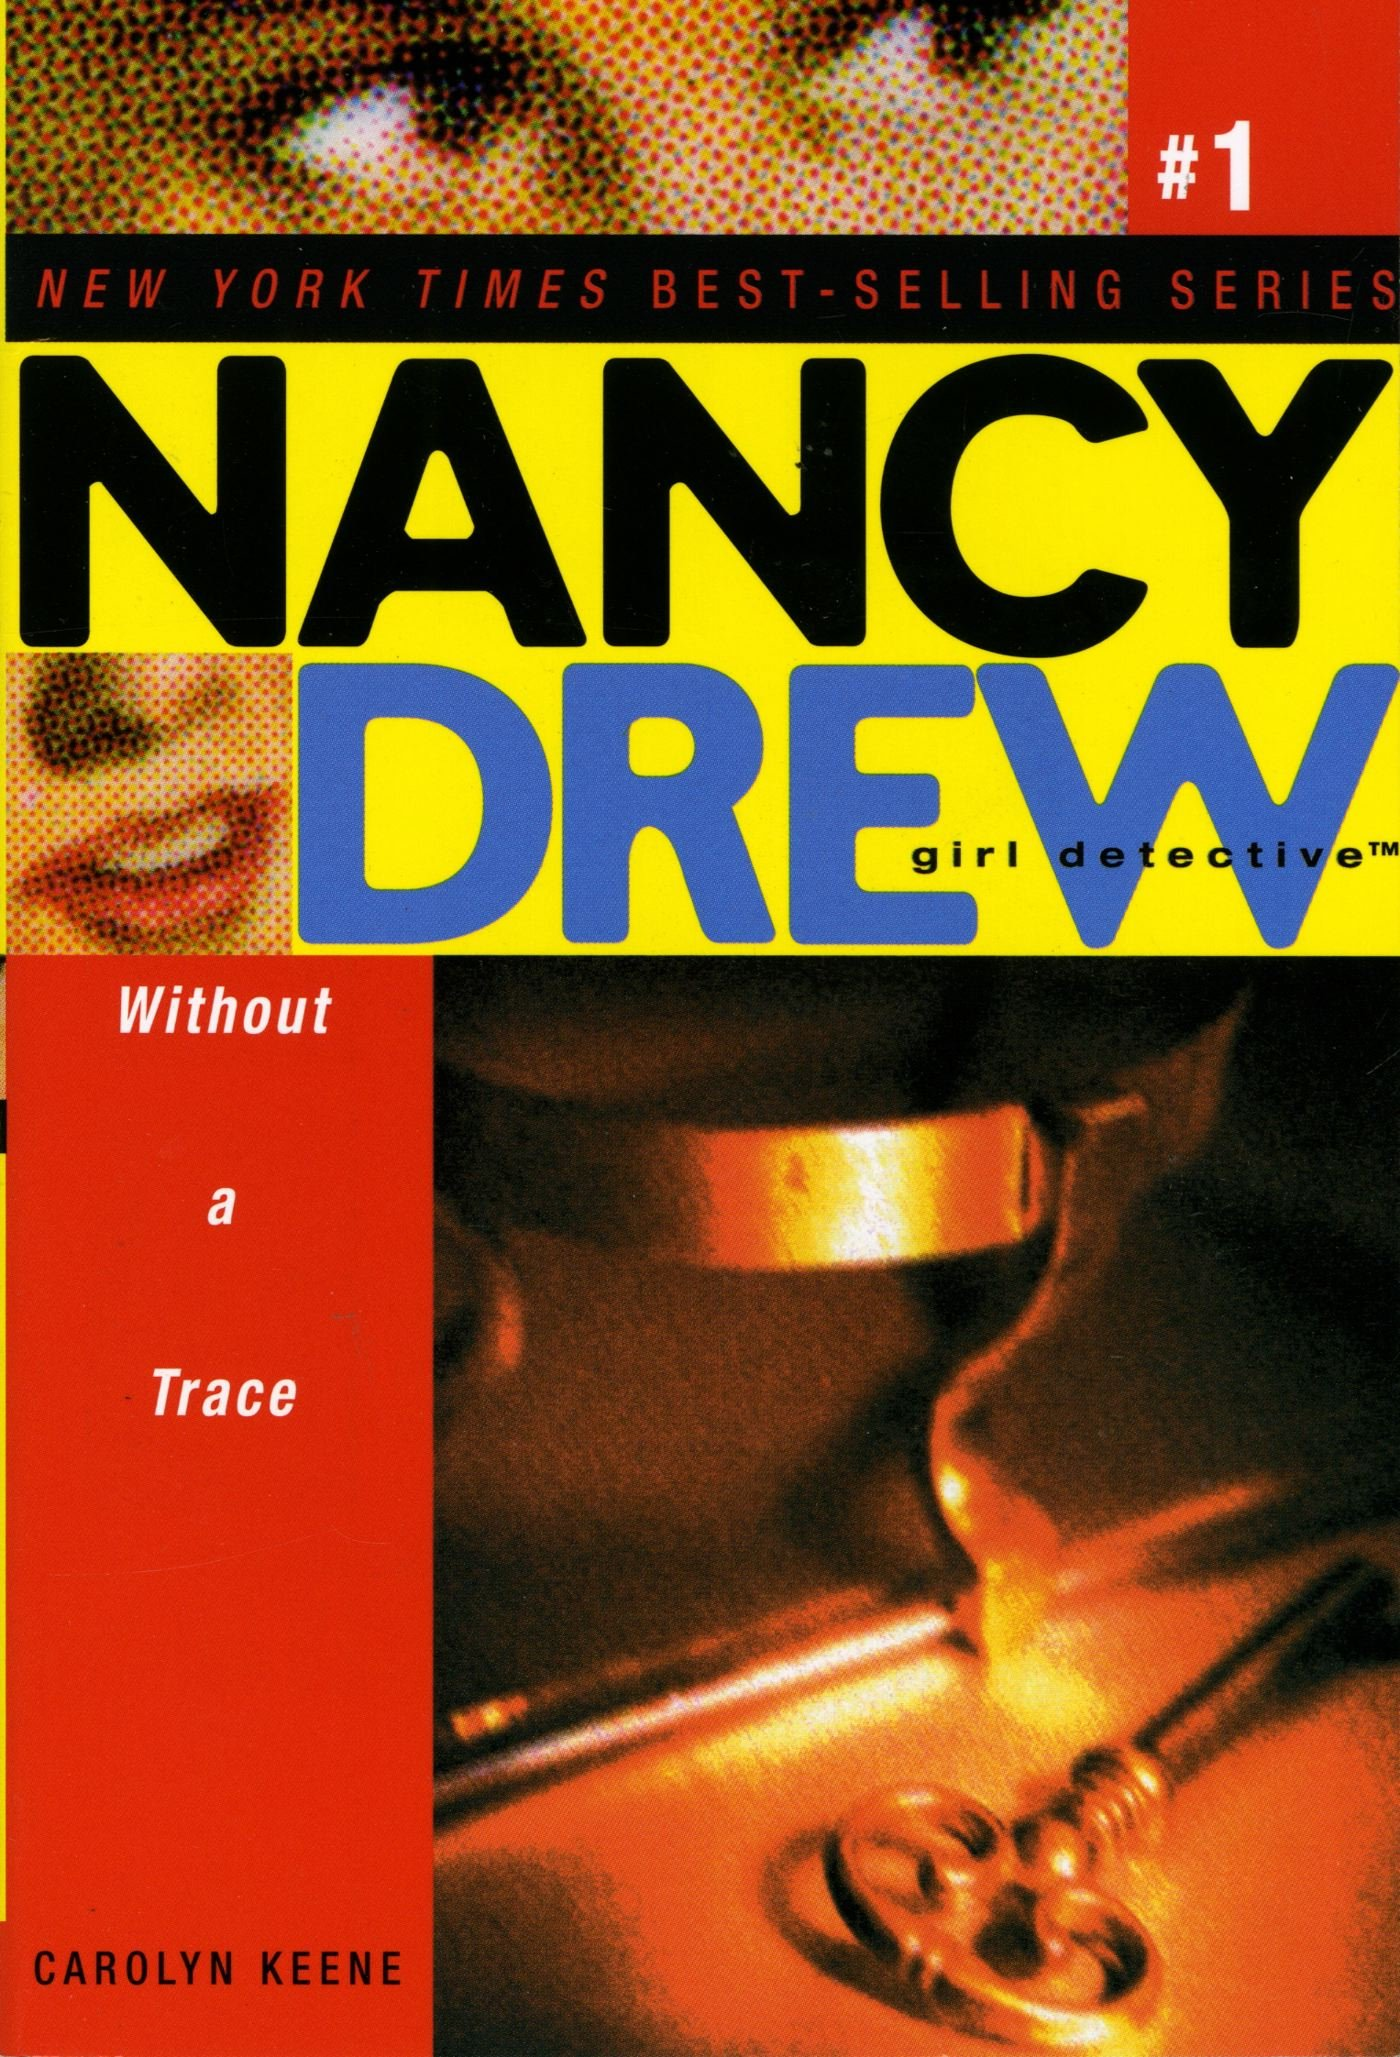 Read Online Without a Trace (Nancy Drew: All New Girl Detective #1) ebook